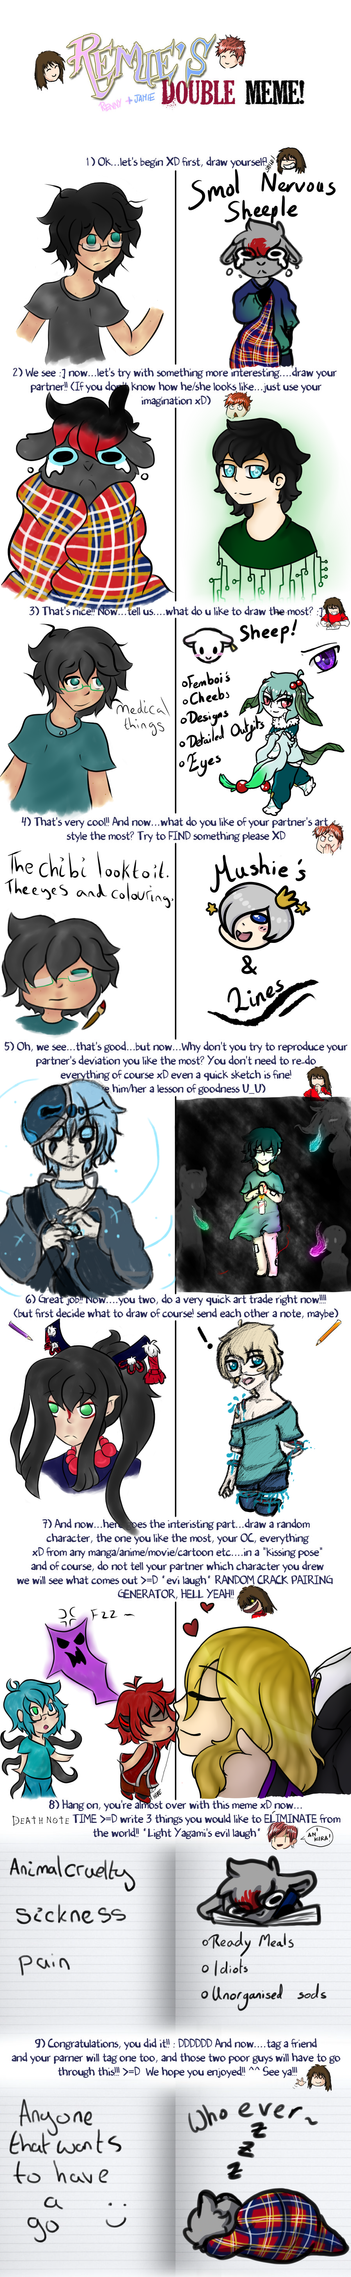 Electric and Kiwi: Double Meme by o0-ElectricDreams-0o